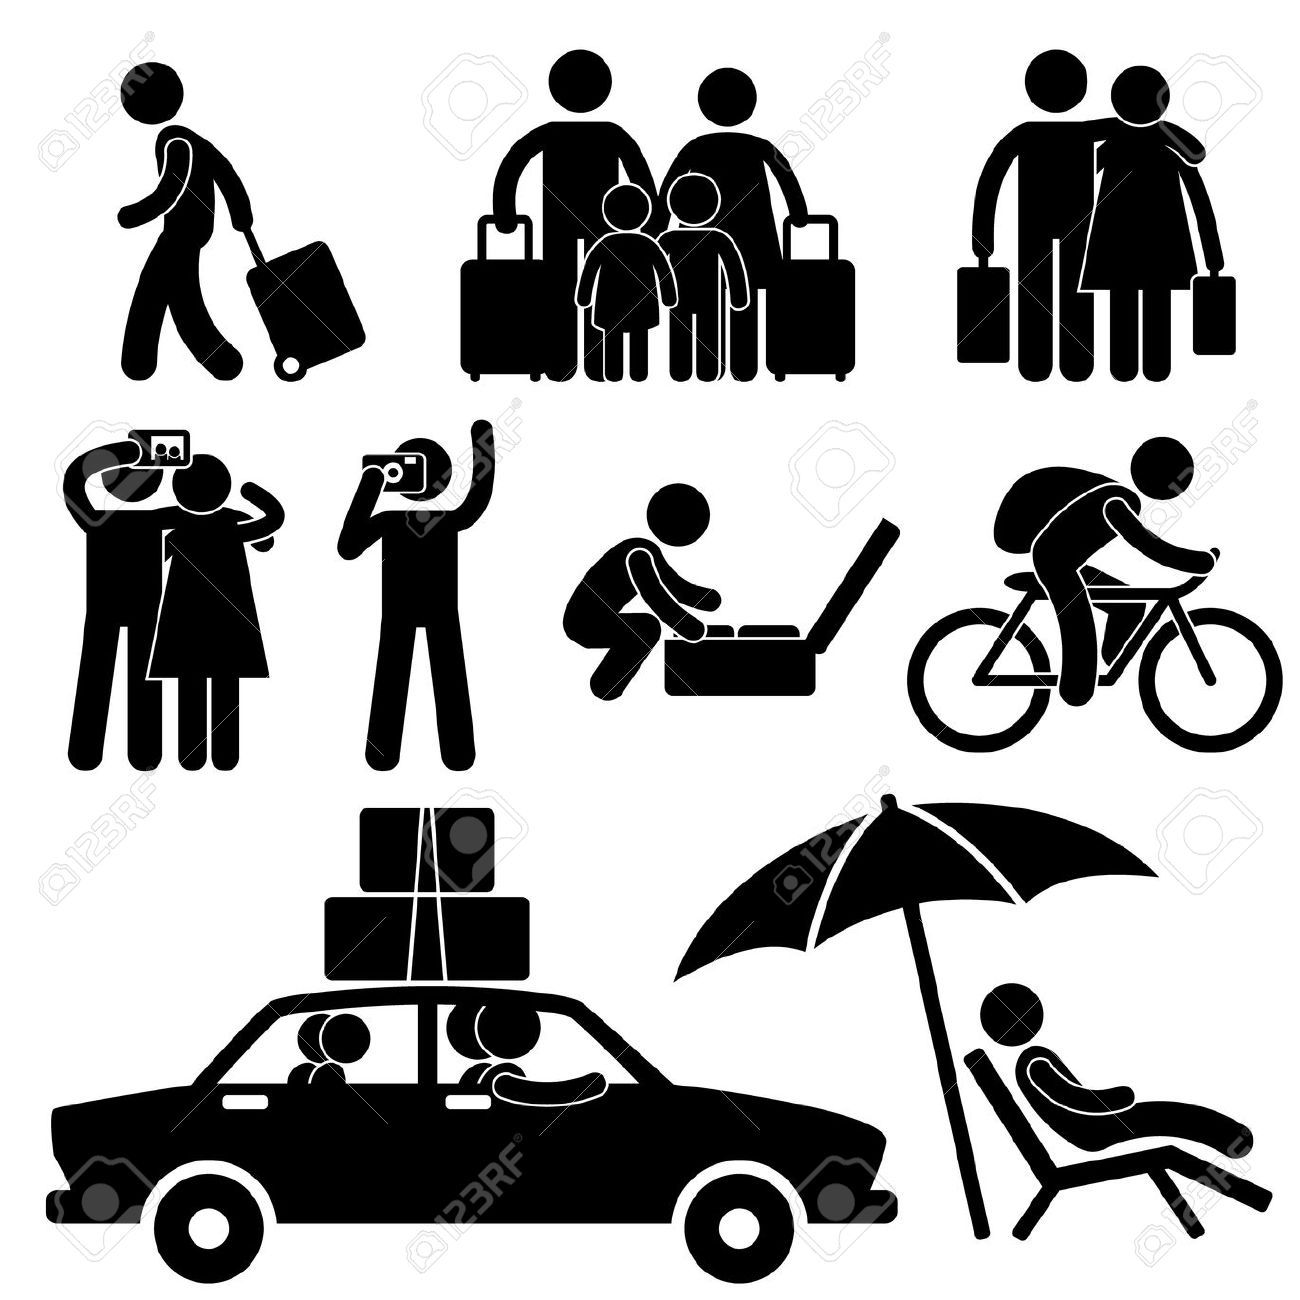 Family couple tourist travel vacation trip holiday honeymoon family couple tourist travel vacation trip holiday honeymoon icon symbol sign pictogram buy this stock vector on shutterstock find other images biocorpaavc Choice Image